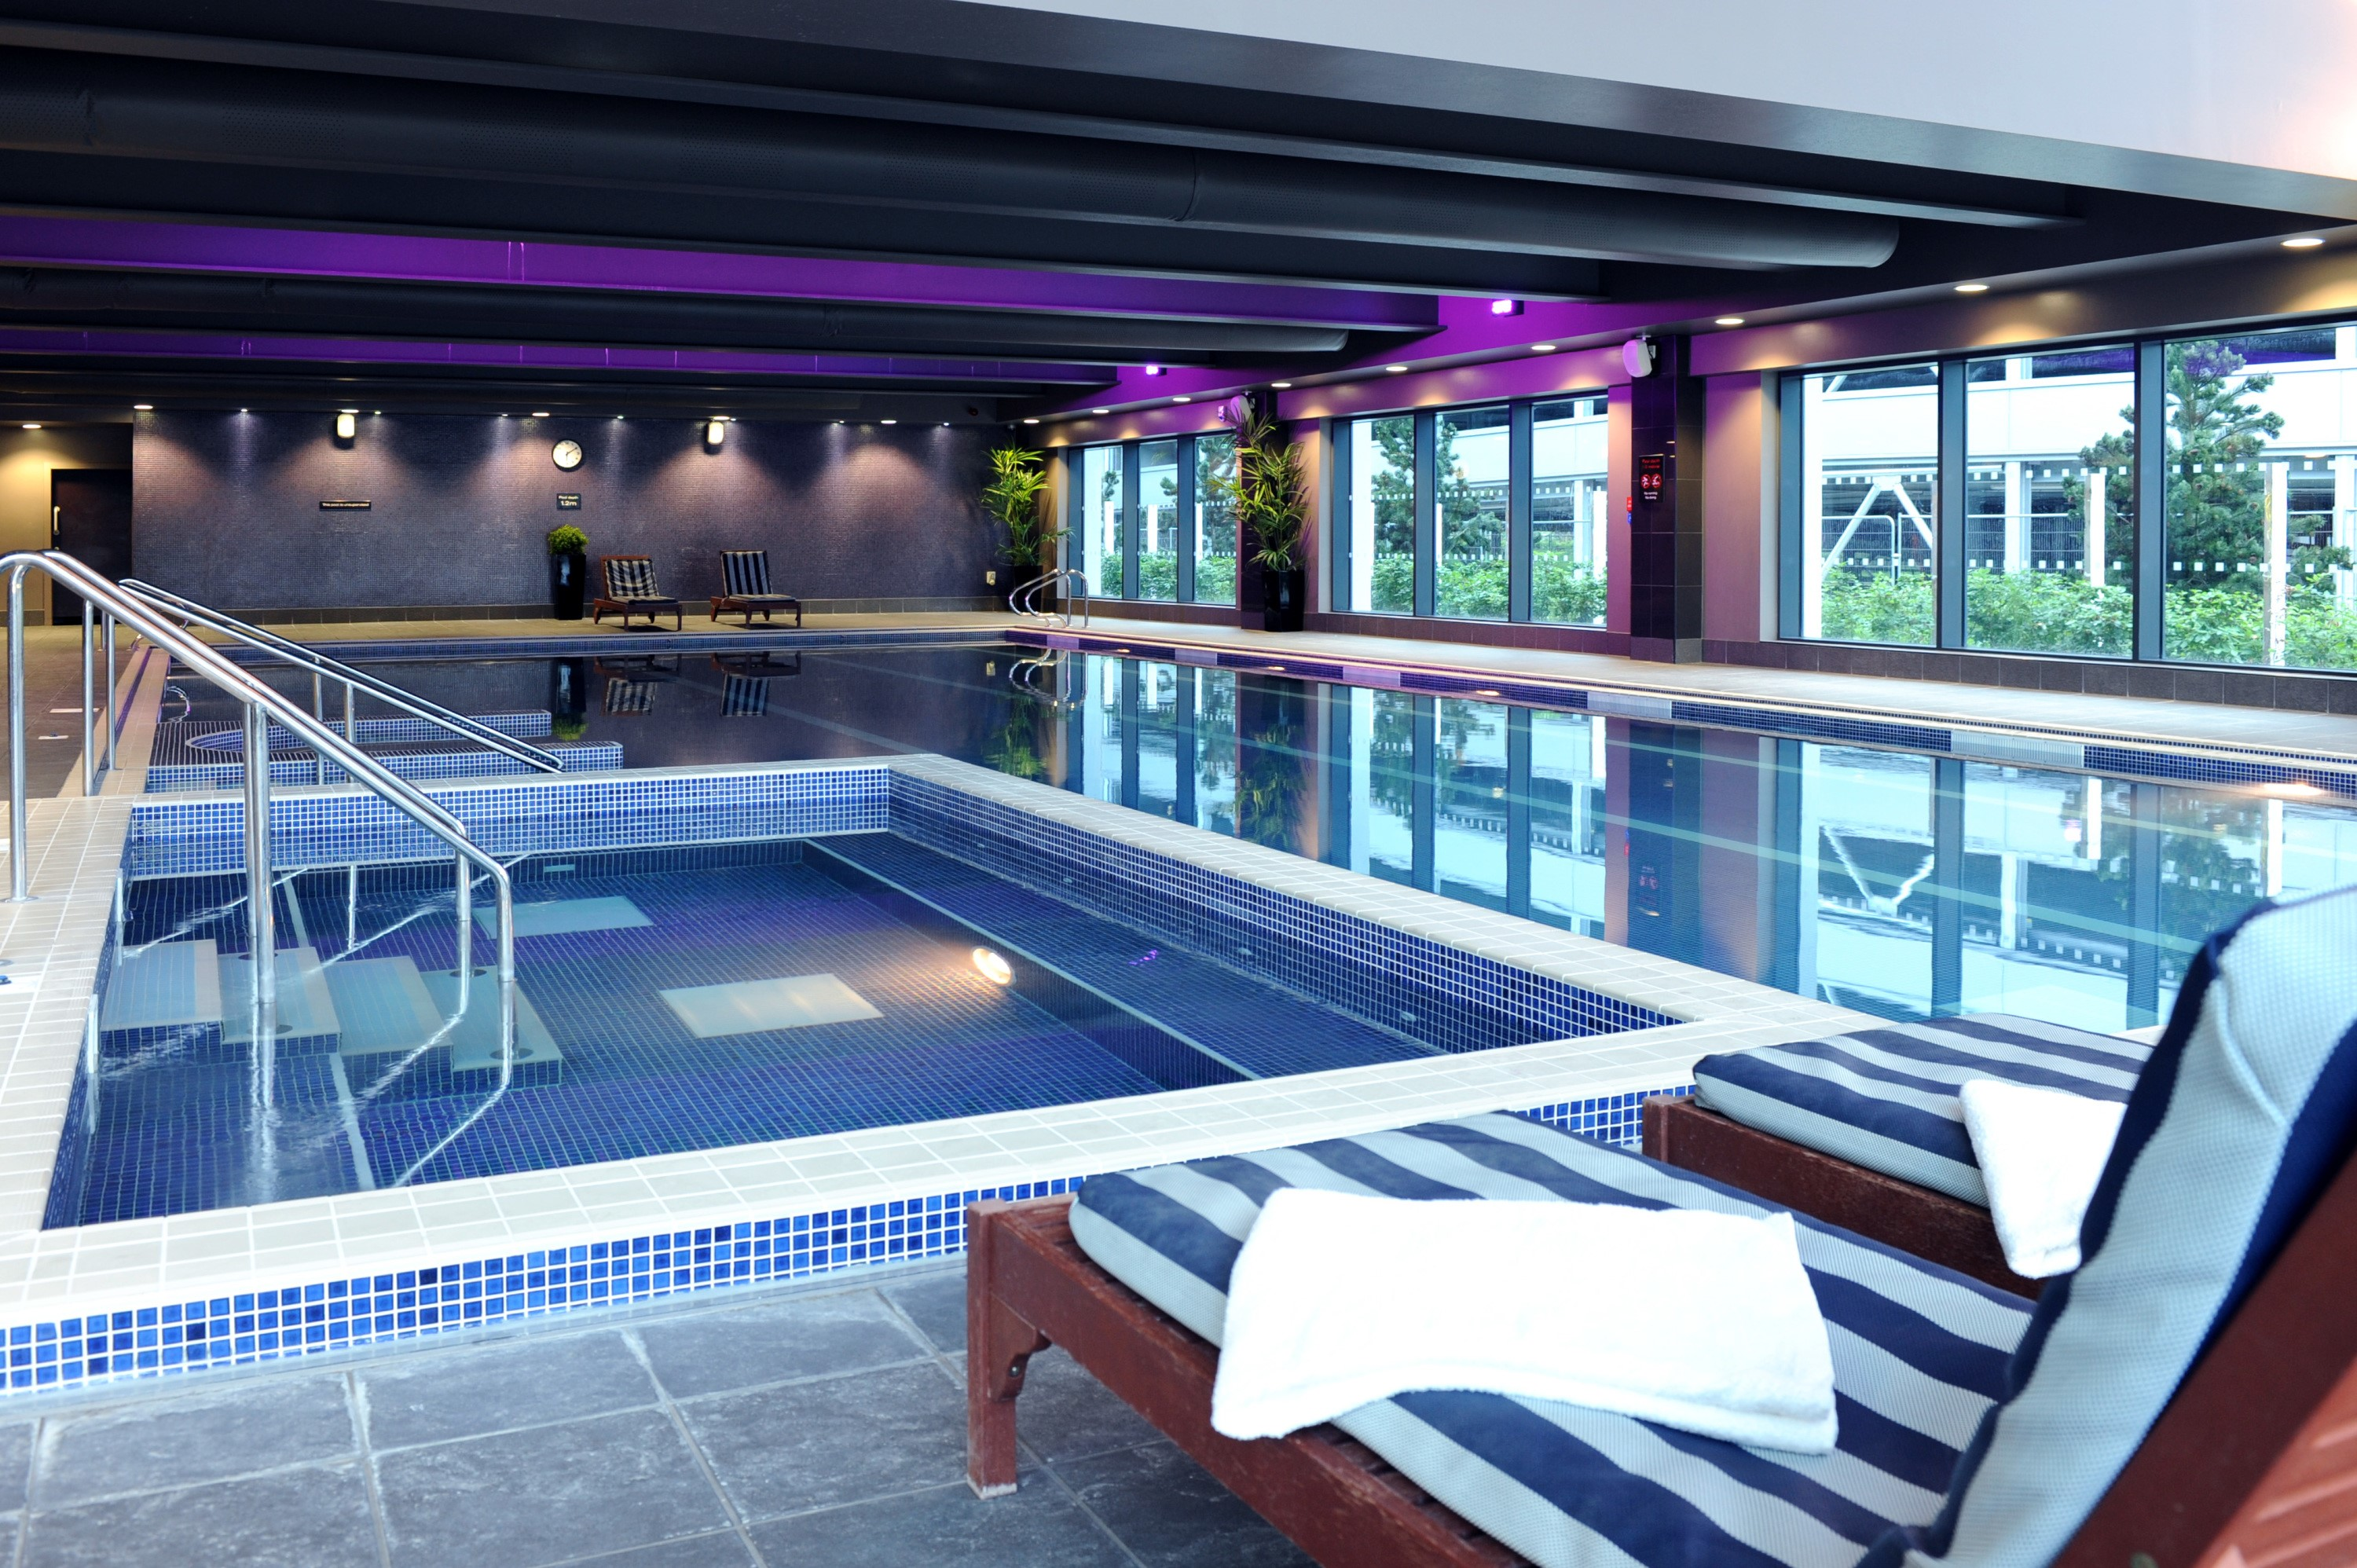 Village hotel leeds south leeds - Public swimming pools bournemouth ...